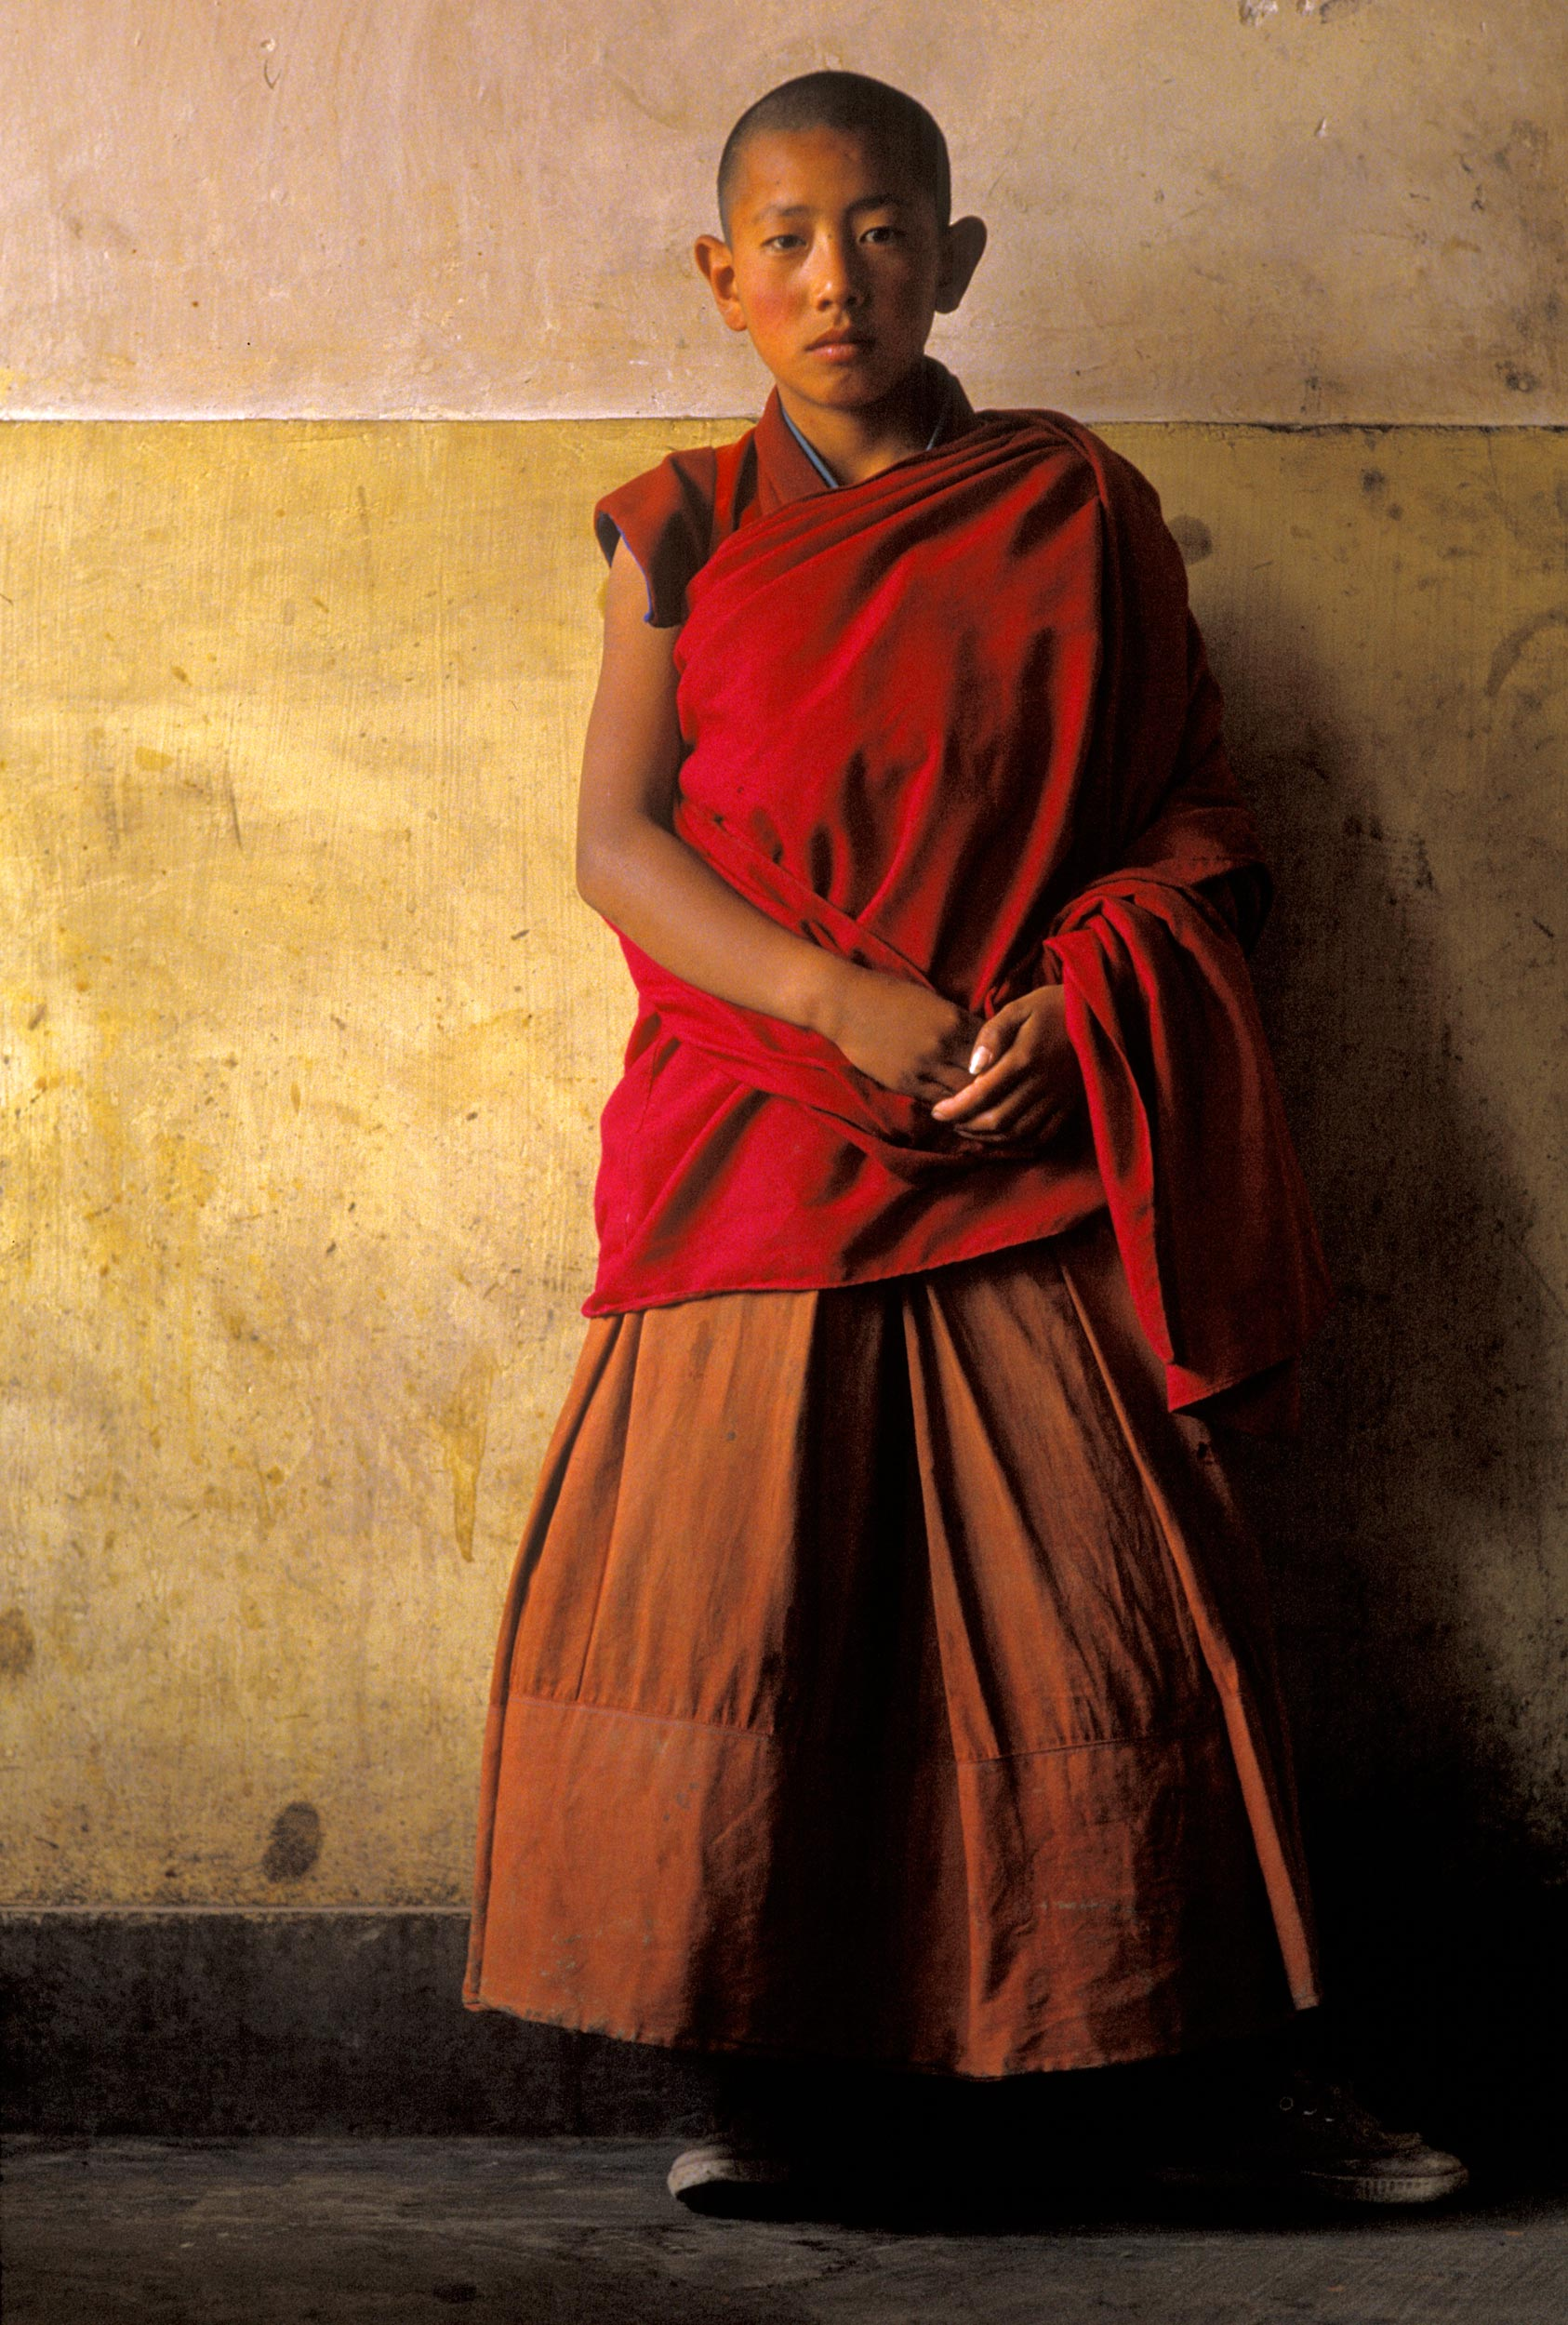 Young-monk-wall-Xiahe-92-web